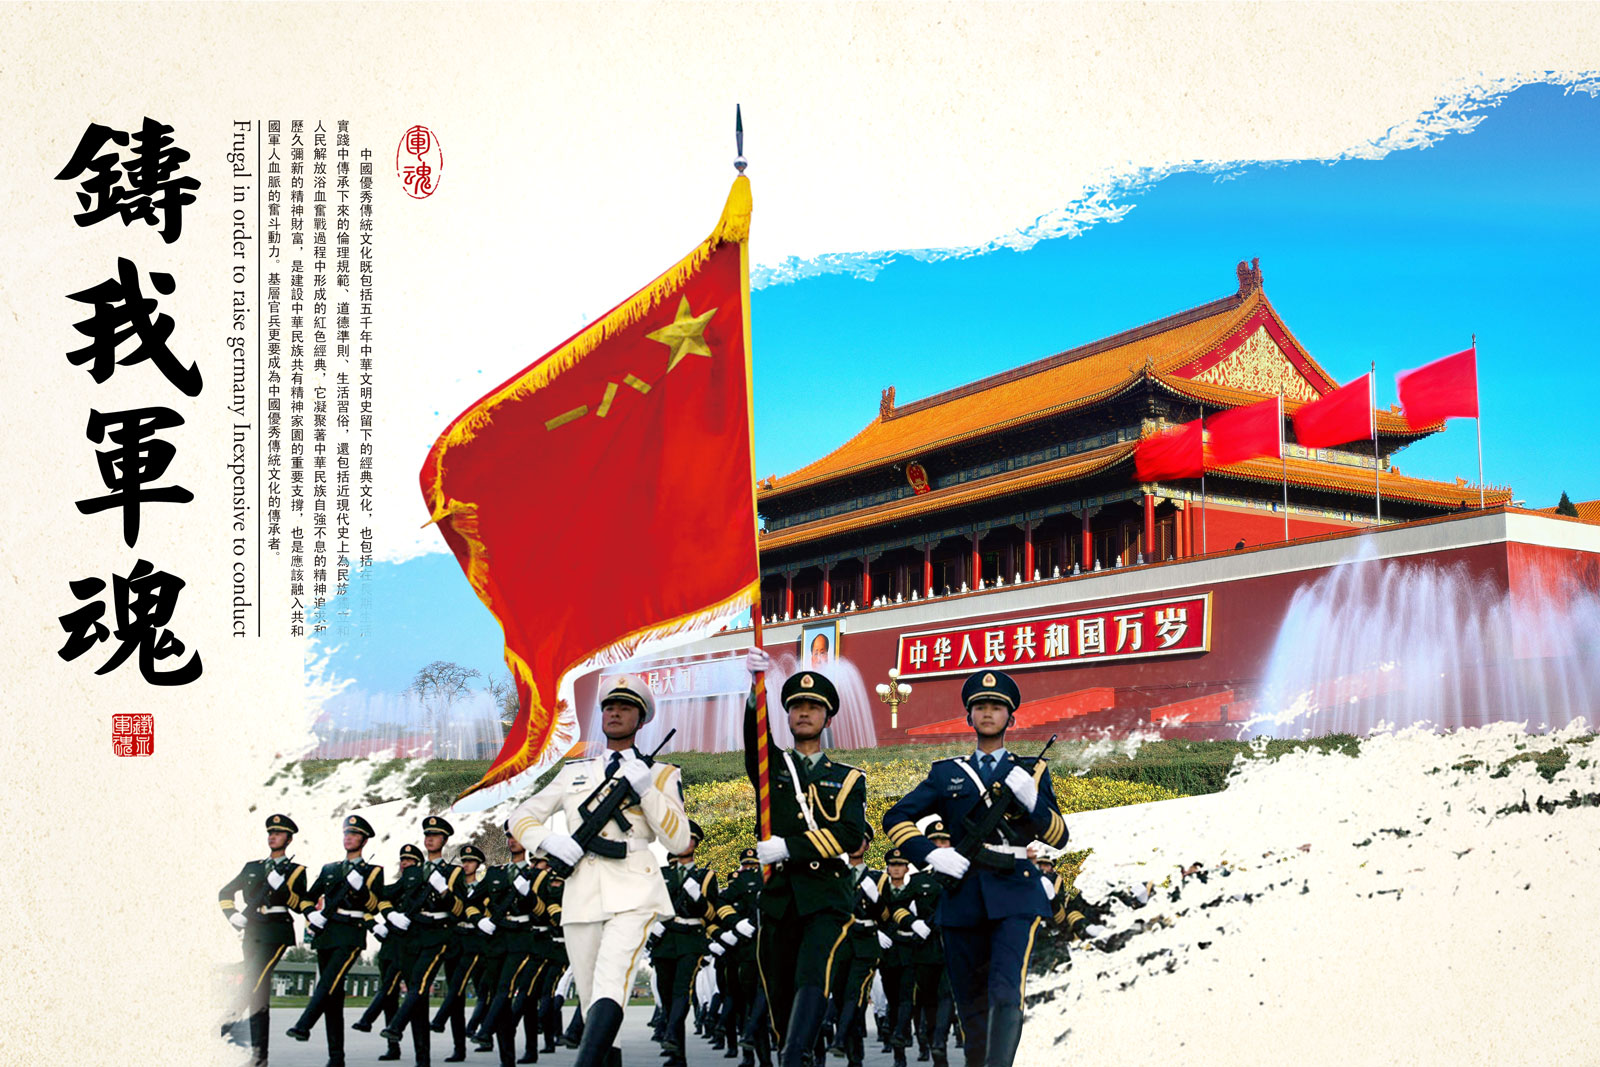 chinesefontdesign.com 2017 03 22 09 24 12 China Army Poster Propaganda Design   PSD File Free Download Government posters psd Chinese Army Poster PSD